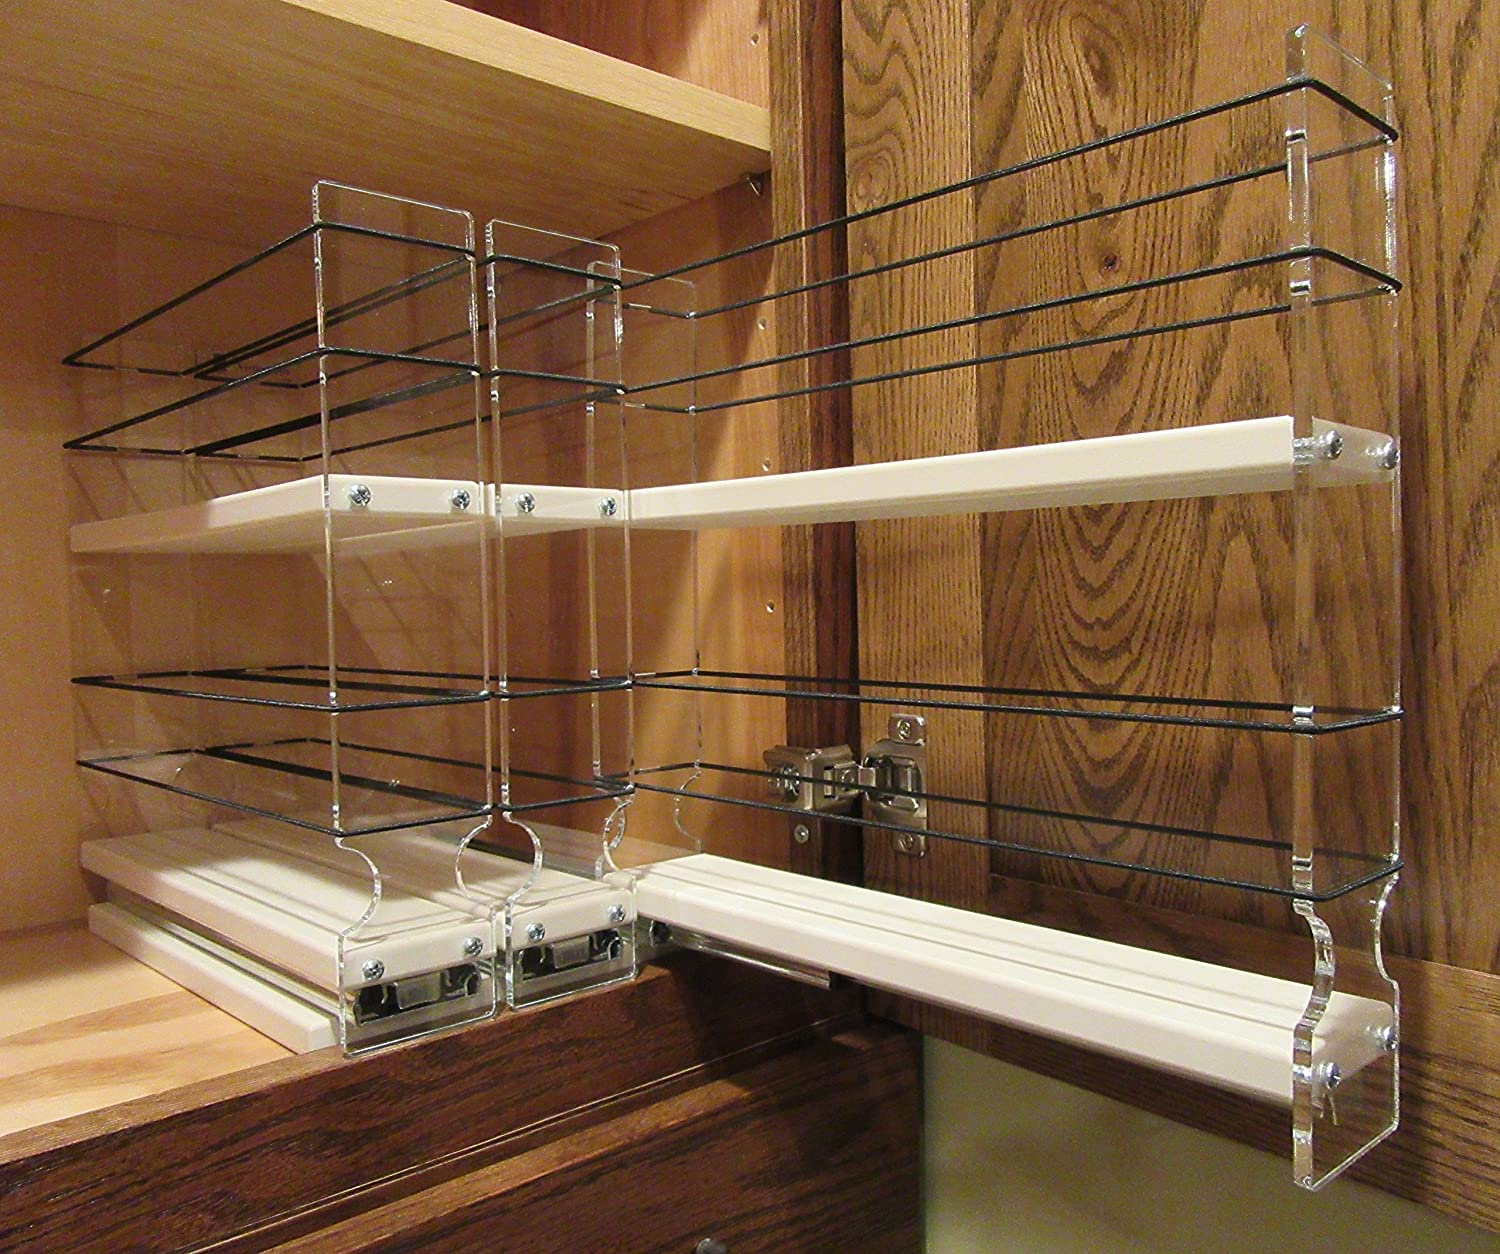 Amazon.com: Vertical Spice   222x2x11 DC   Spice Rack   Cabinet Mounted  3  Drawers   30 Capacity   New And Unique: Spice Racks For Kitchen Cabinets:  Kitchen ...